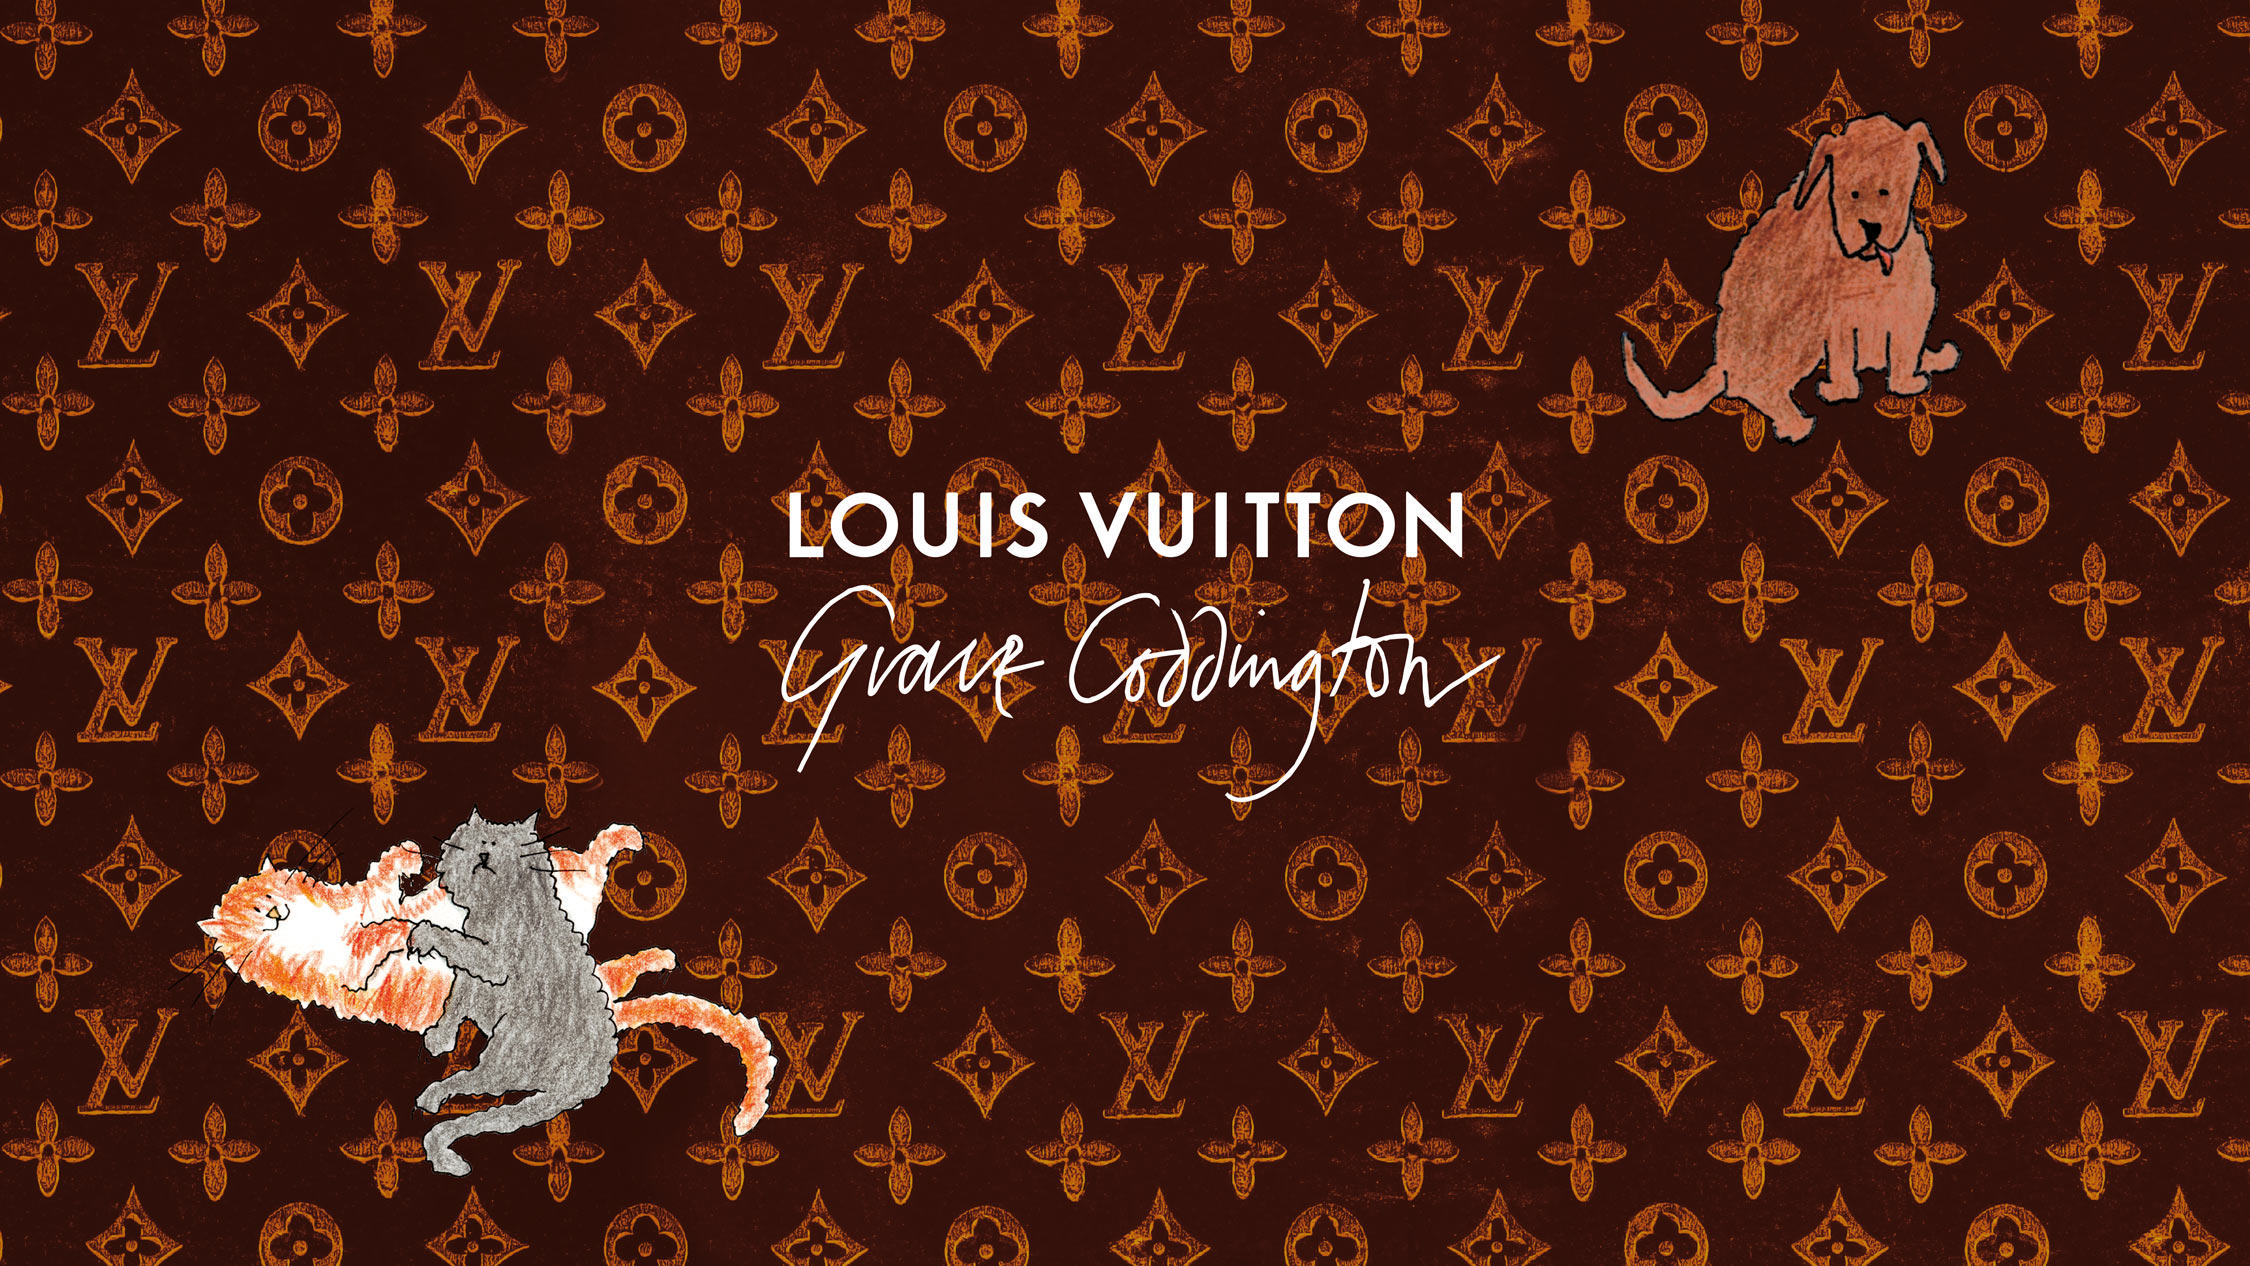 Louis Vuitton – Grace Coddington